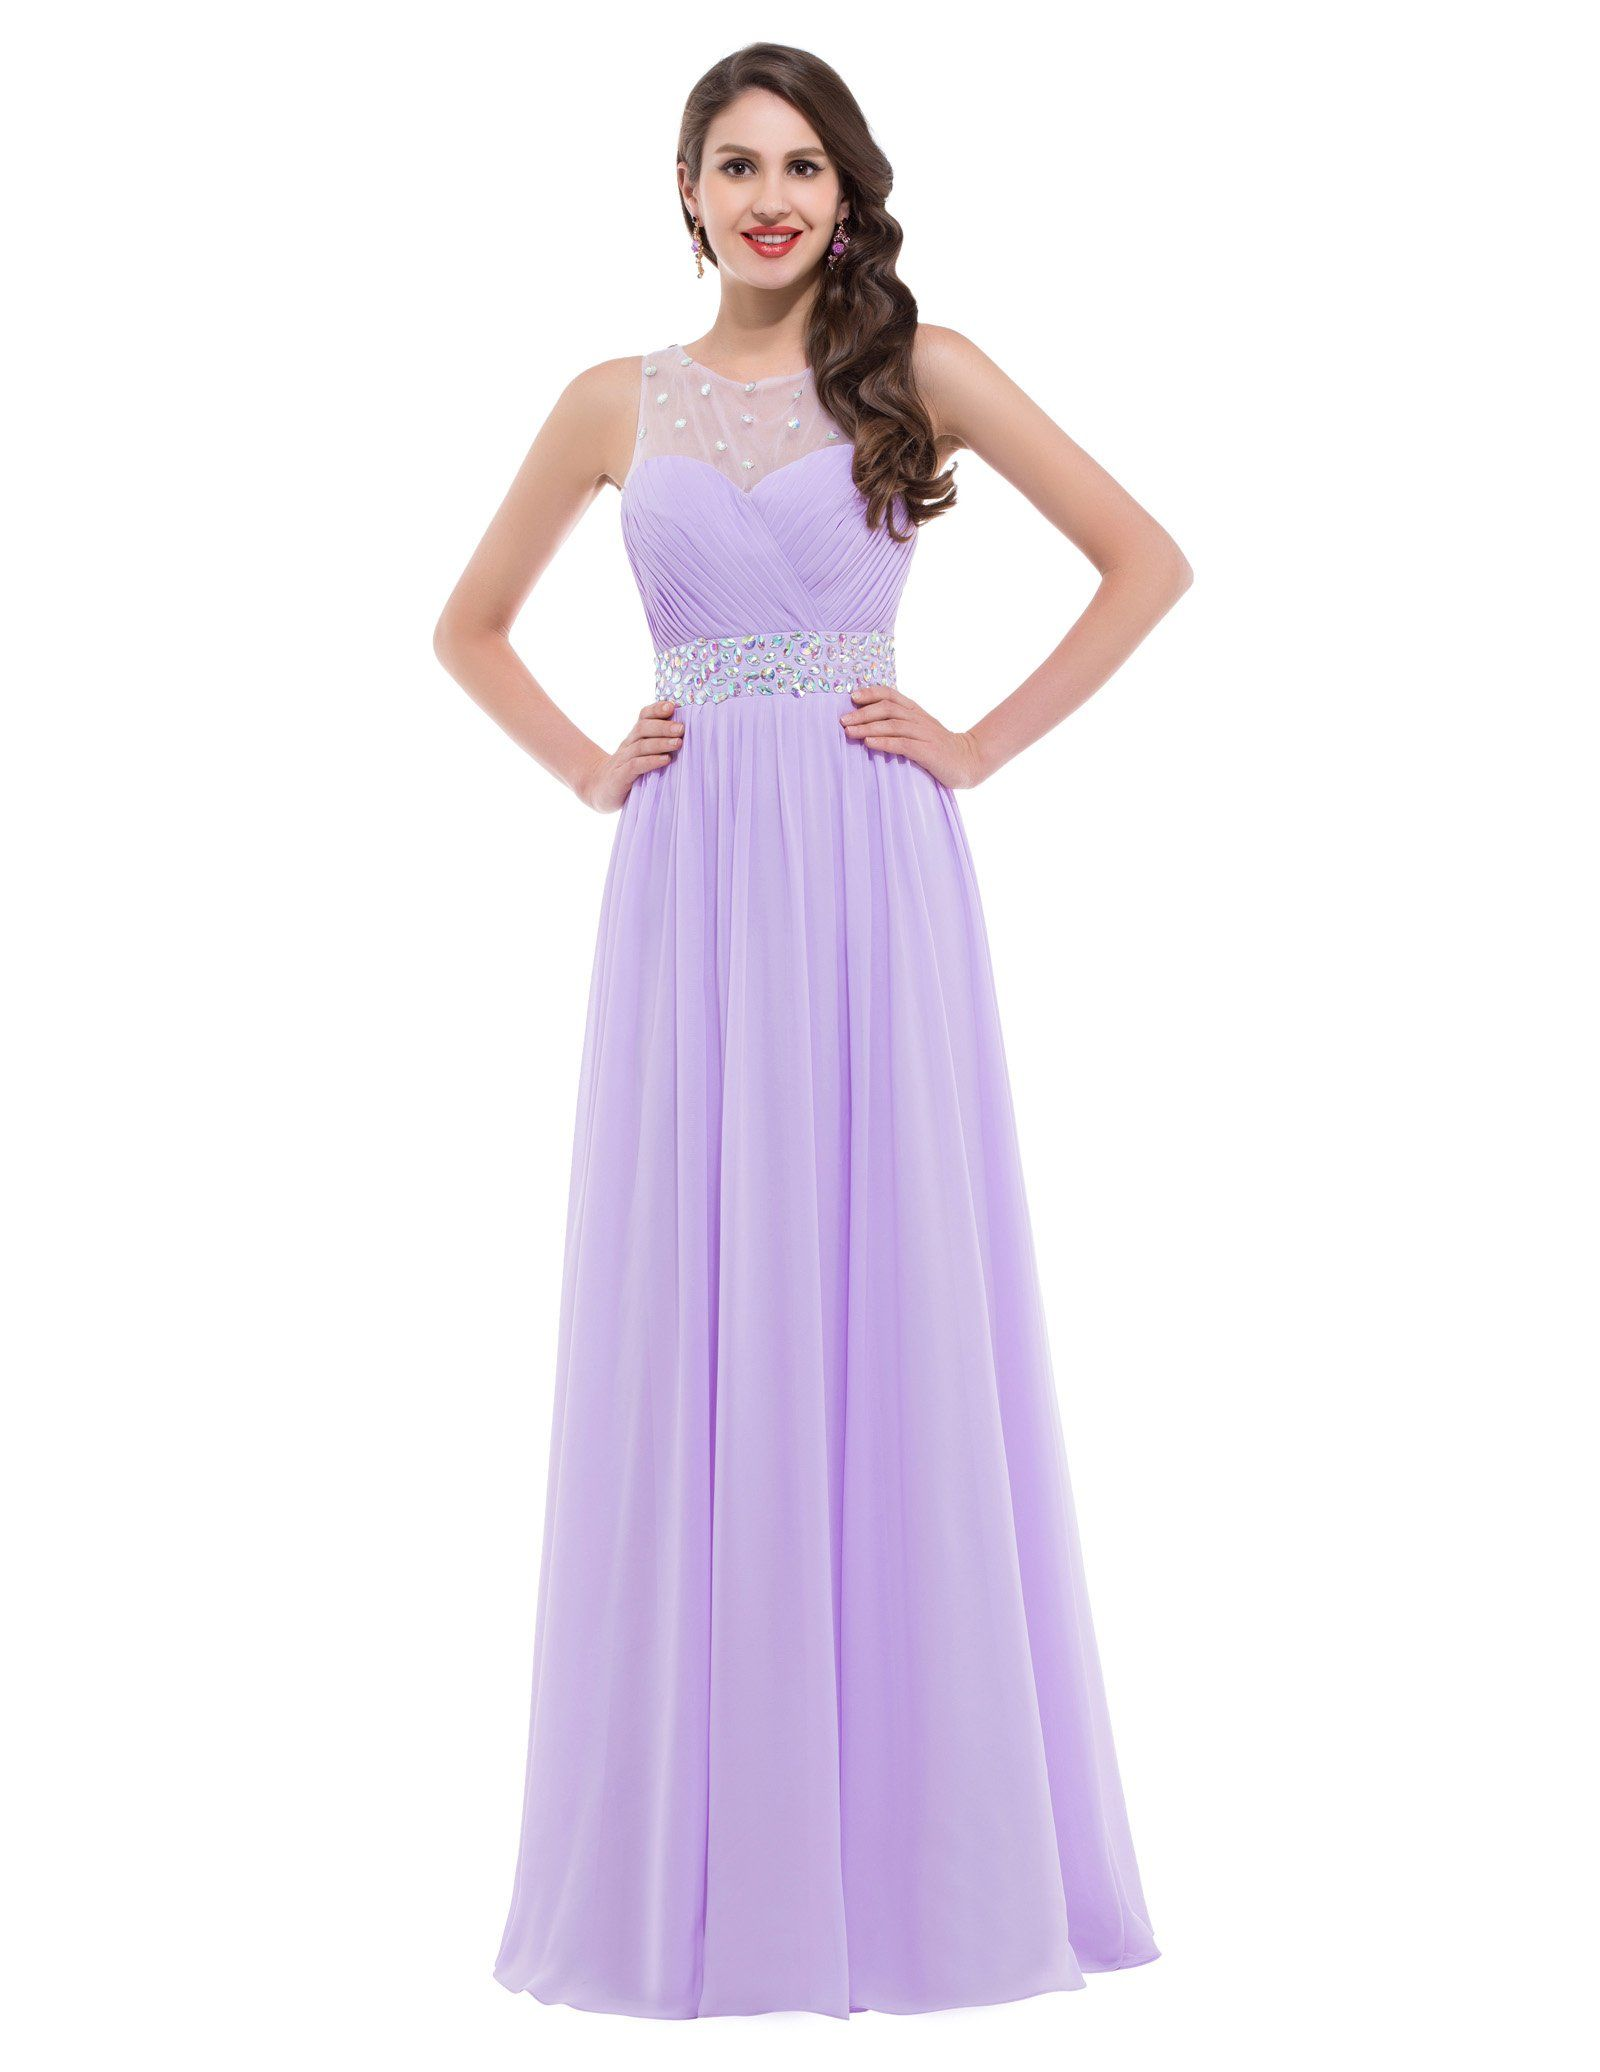 Girls Round Neck Sleeveless Floor Length Chiffon Lilac Dresses UK12 ...